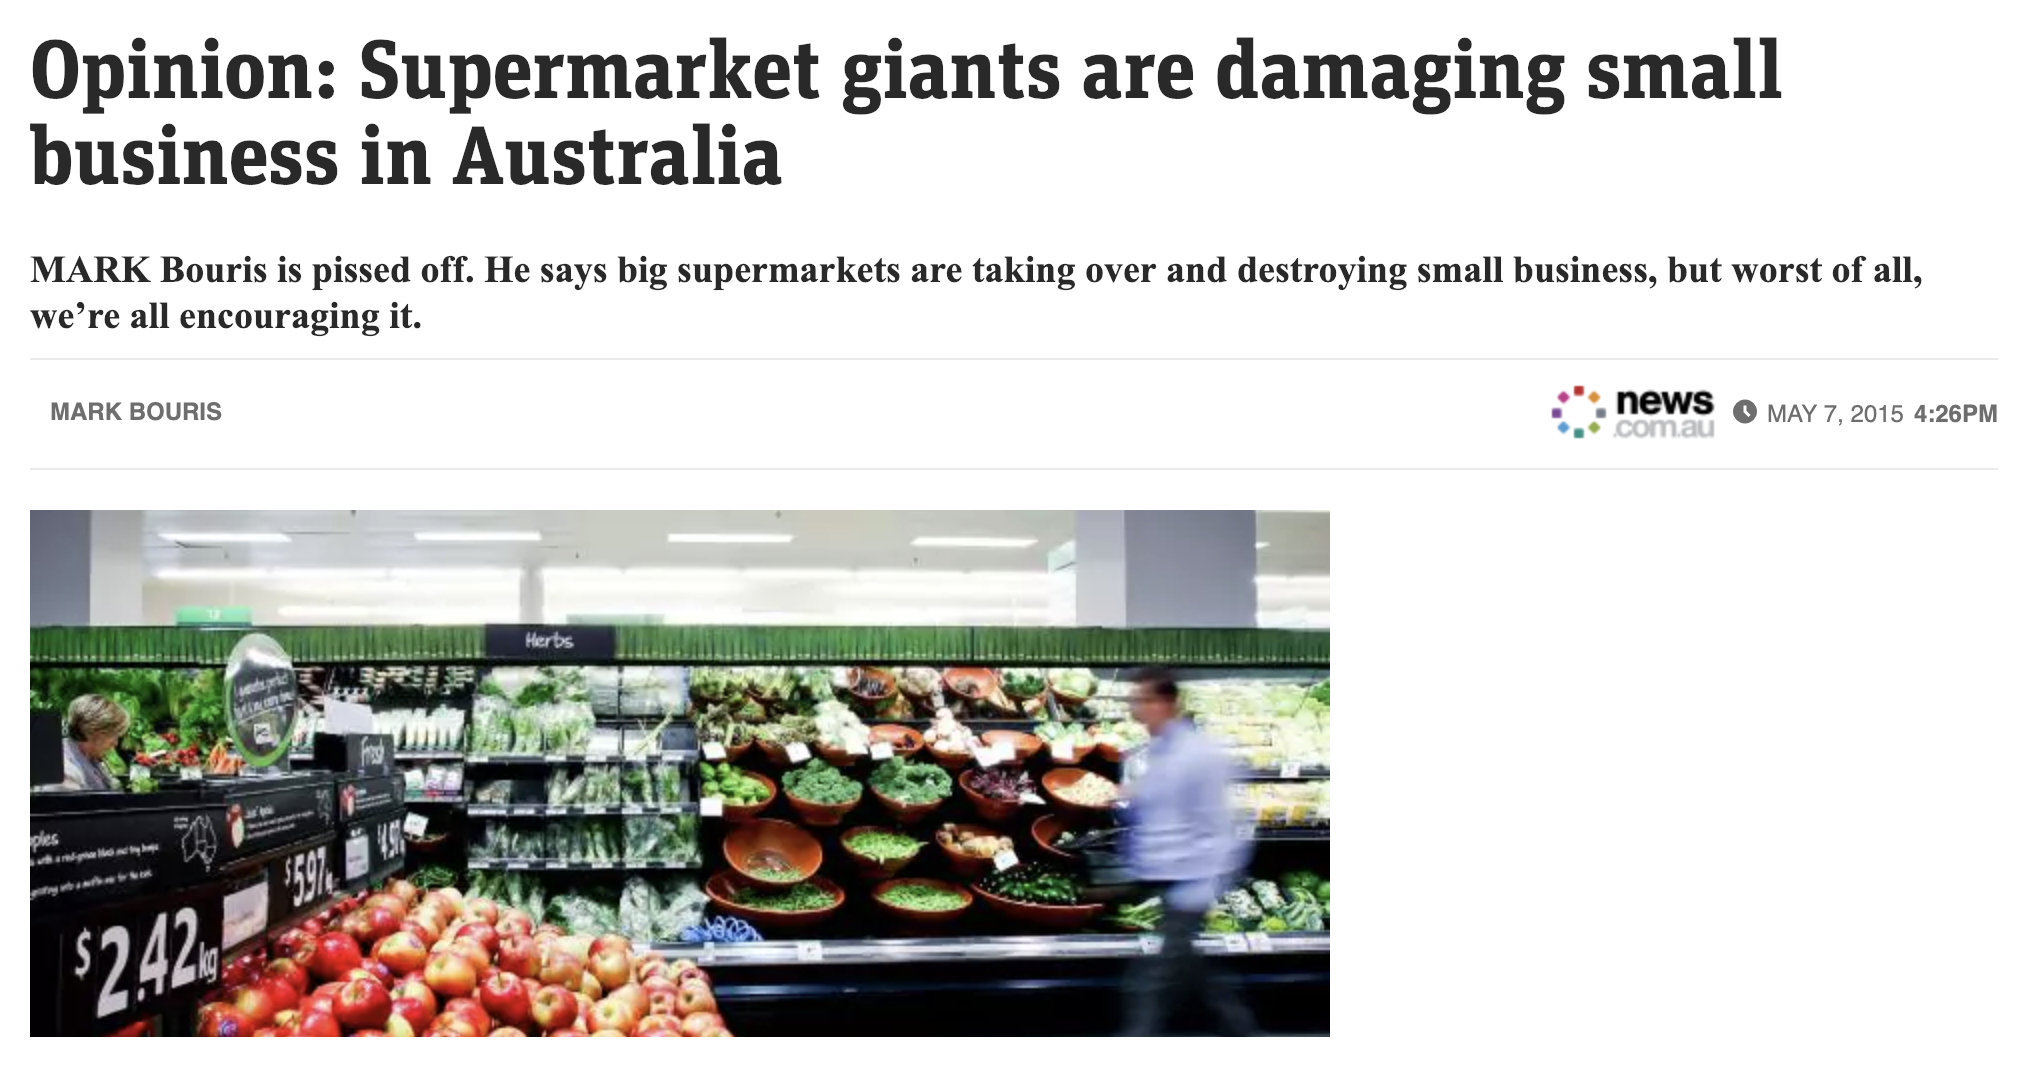 """""""Supermarkets are taking over and destroying small businesses."""" - - Mark Bouris, Founder of Mentored"""